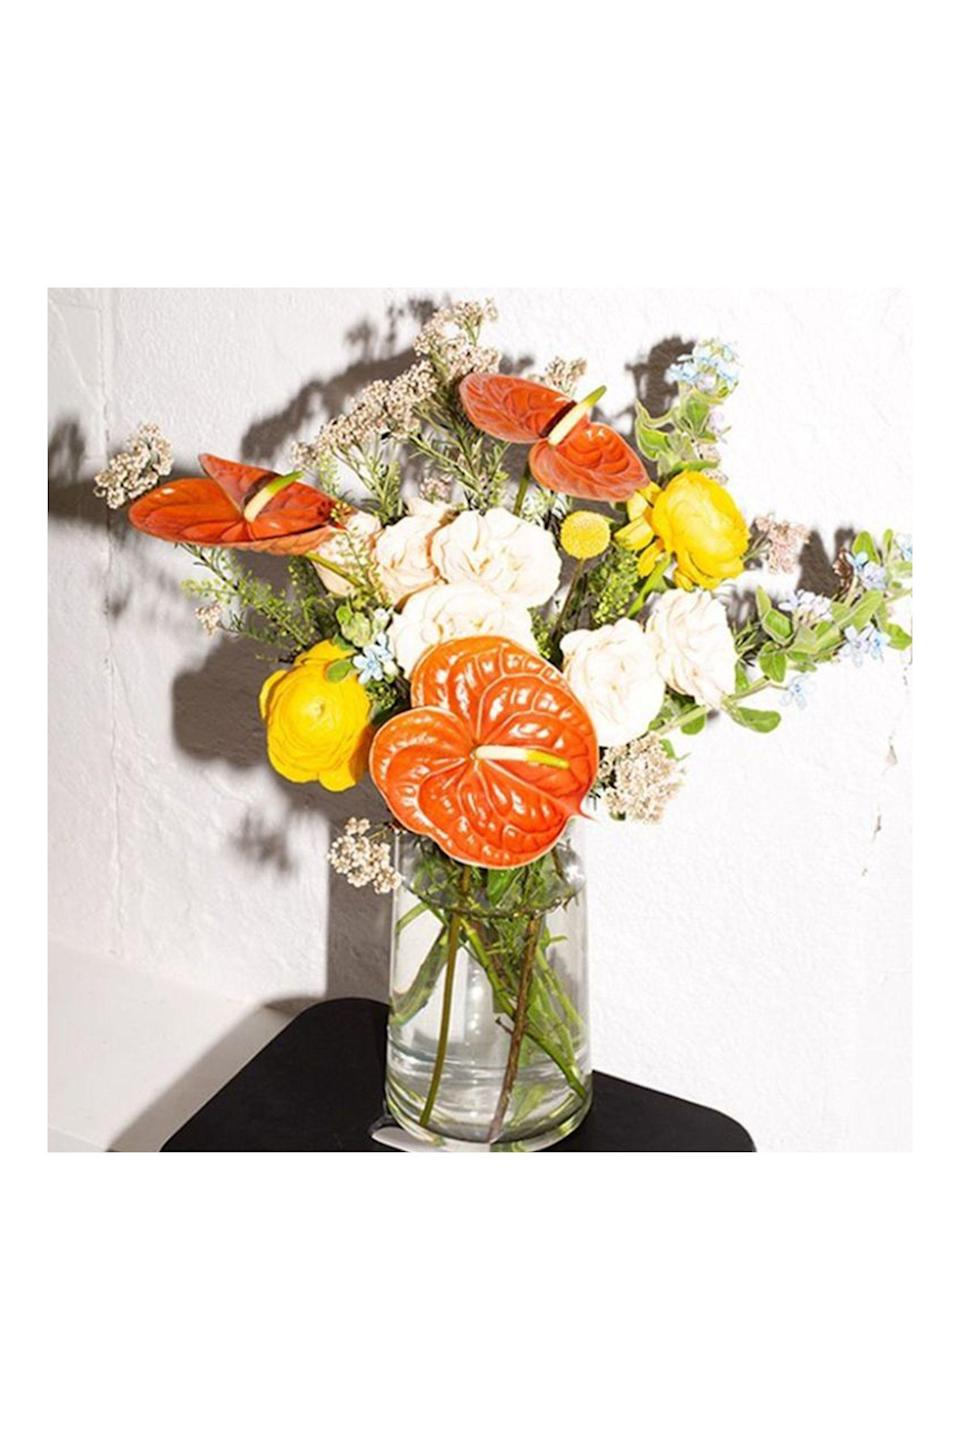 """<p><strong>Homecoming Florals</strong></p><p>home-coming.com</p><p><strong>$107.00</strong></p><p><a href=""""https://home-coming.com/"""" rel=""""nofollow noopener"""" target=""""_blank"""" data-ylk=""""slk:Shop Now"""" class=""""link rapid-noclick-resp"""">Shop Now</a></p><p><a href=""""https://home-coming.com/"""" rel=""""nofollow noopener"""" target=""""_blank"""" data-ylk=""""slk:Homecoming Florals"""" class=""""link rapid-noclick-resp"""">Homecoming Florals</a> went from being a floral design and events space to expanding the business to a full service cafe that offers home goods, books, magazines, apothecary, in addition to their floral design, fresh cut flowers, and plants. While the florals are only for those local to New York City, they do ship home goods out of state and are expanding plant and floral shipping soon.</p>"""